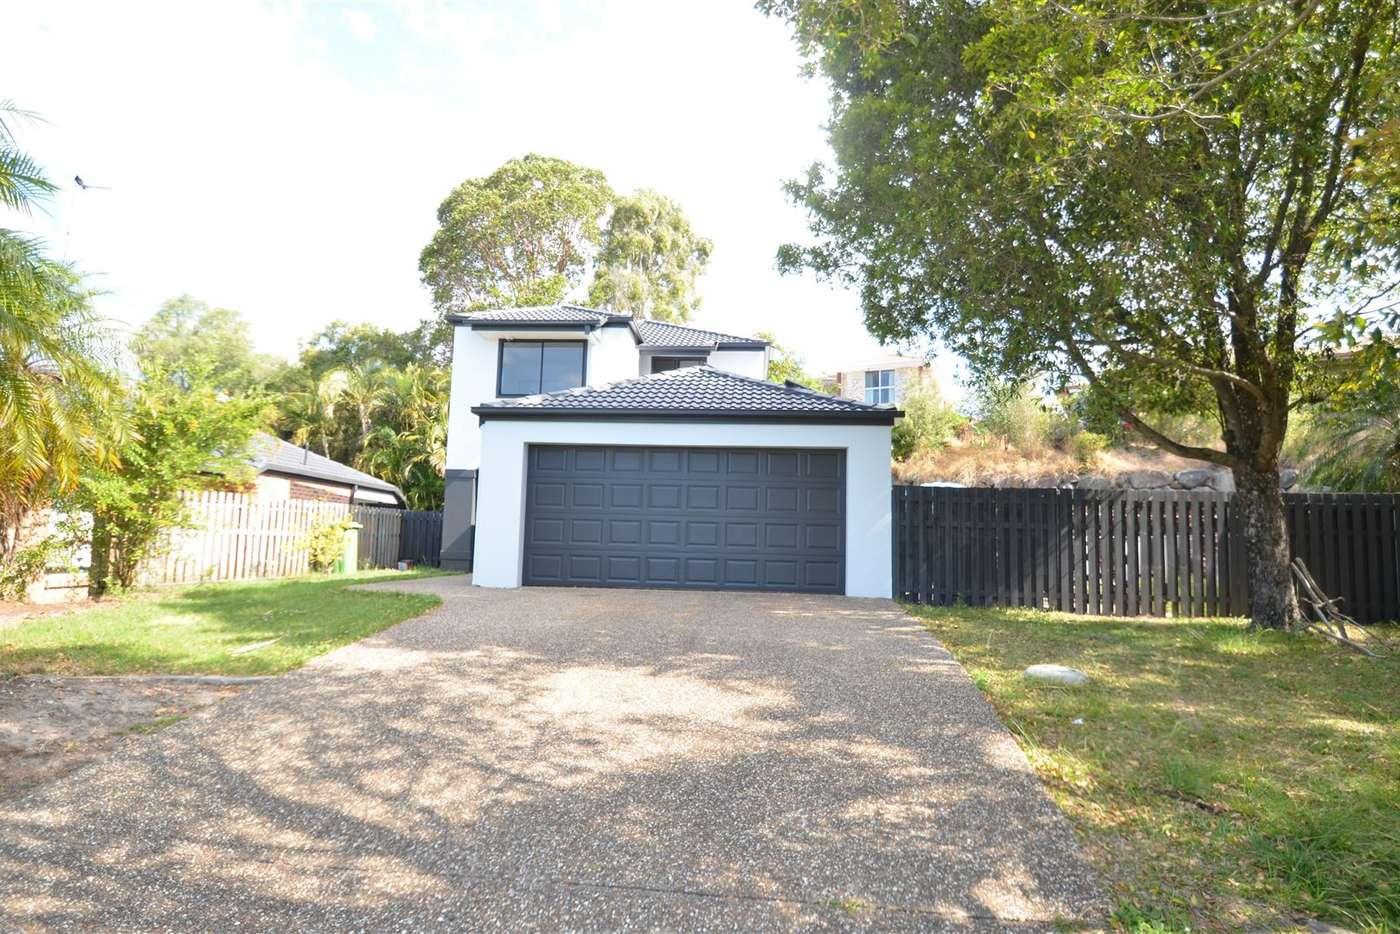 Main view of Homely house listing, 22 Greensborough Crescent, Parkwood QLD 4214